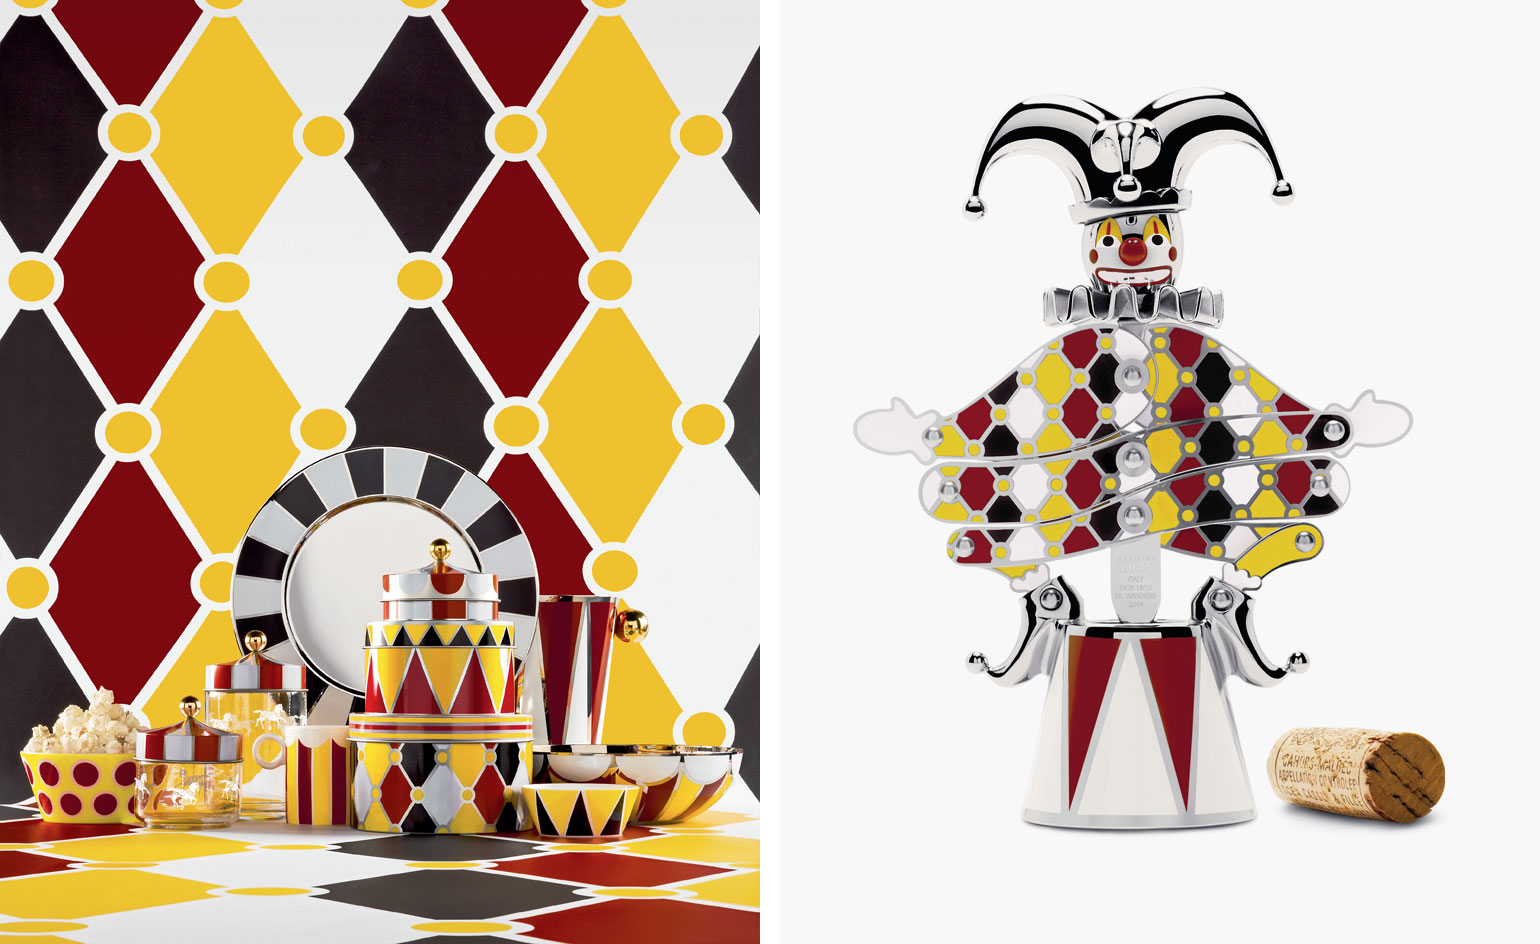 Marcel Wanders Collaborates With Alessi On Circus